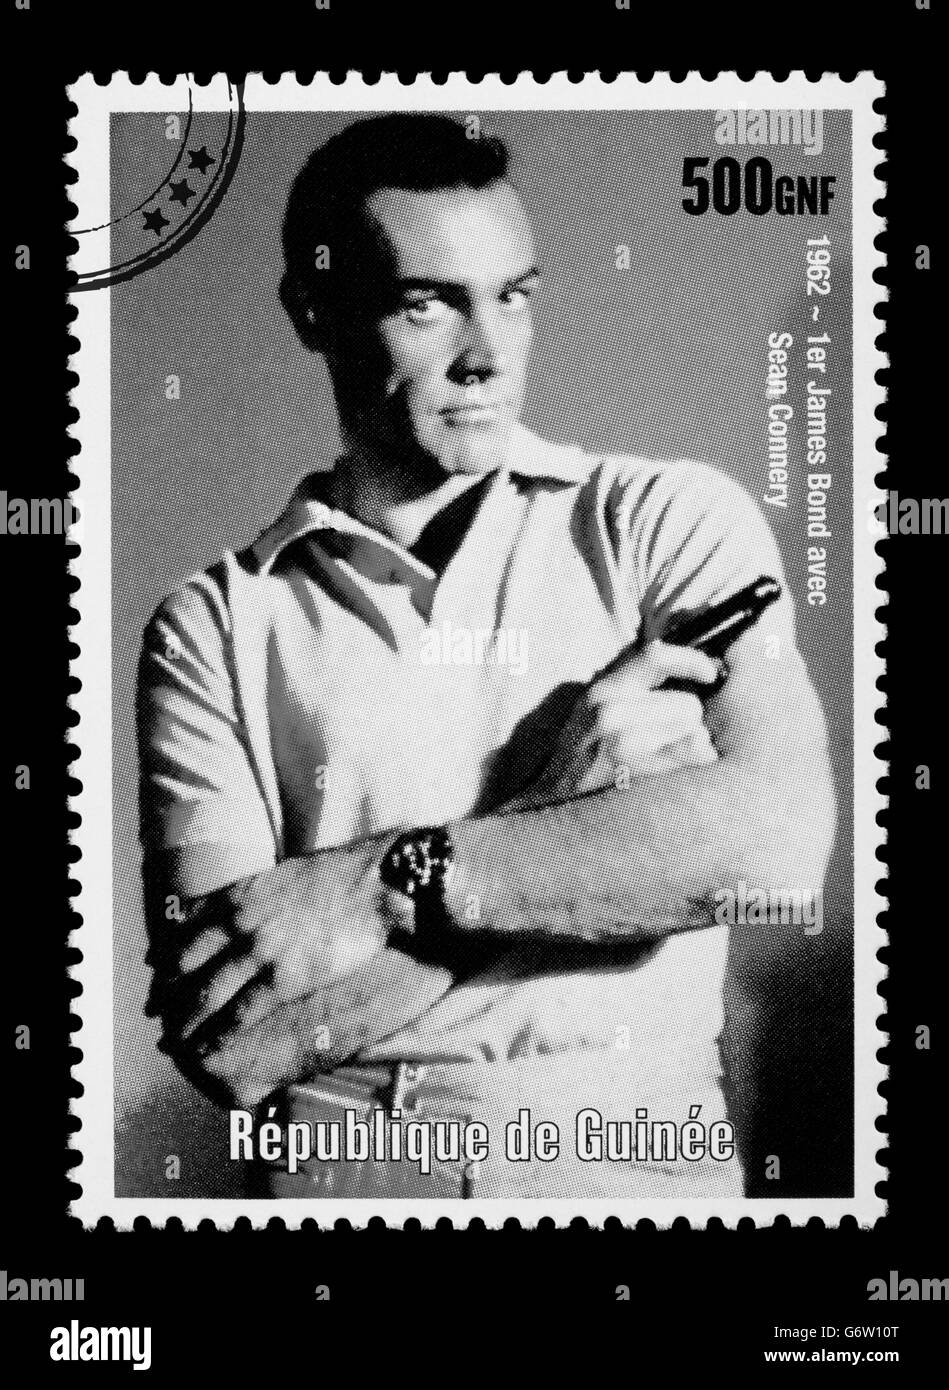 A postage stamp printed in the Republic of Guinea showing James Bond - Stock Image